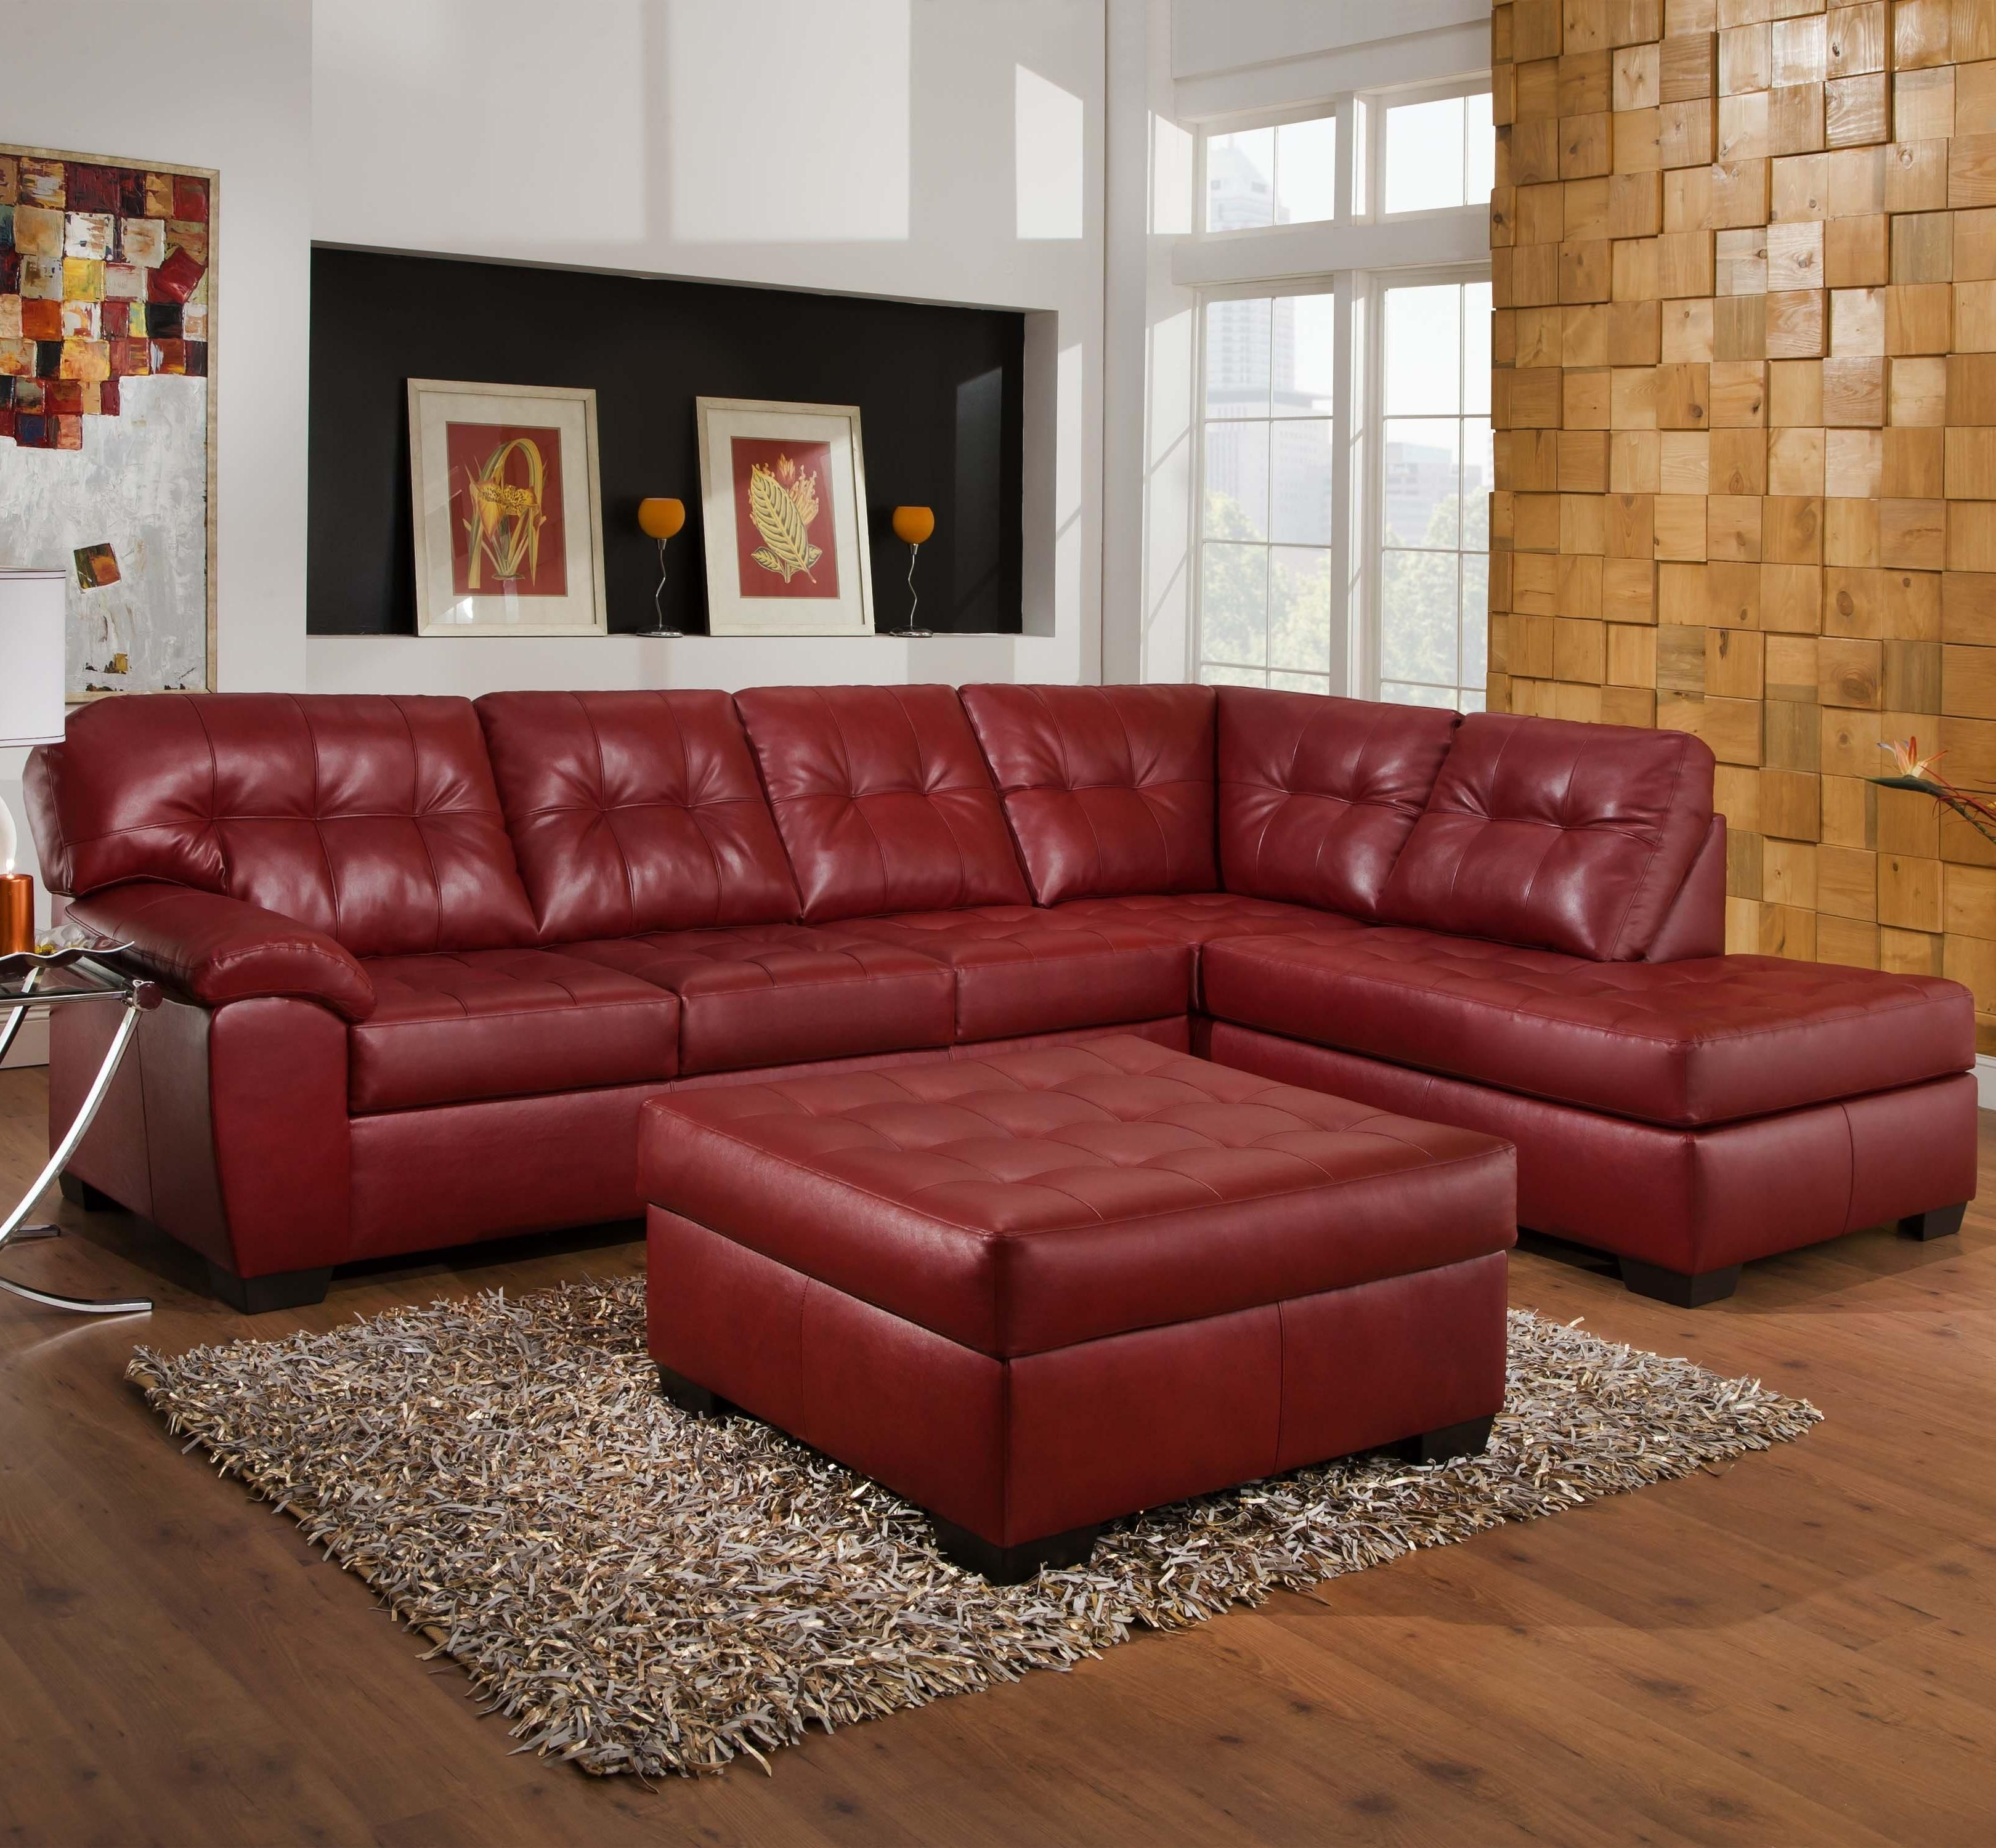 9569 2 Piece Sectional With Tufted Seats & Backsimmons with regard to Memphis Sectional Sofas